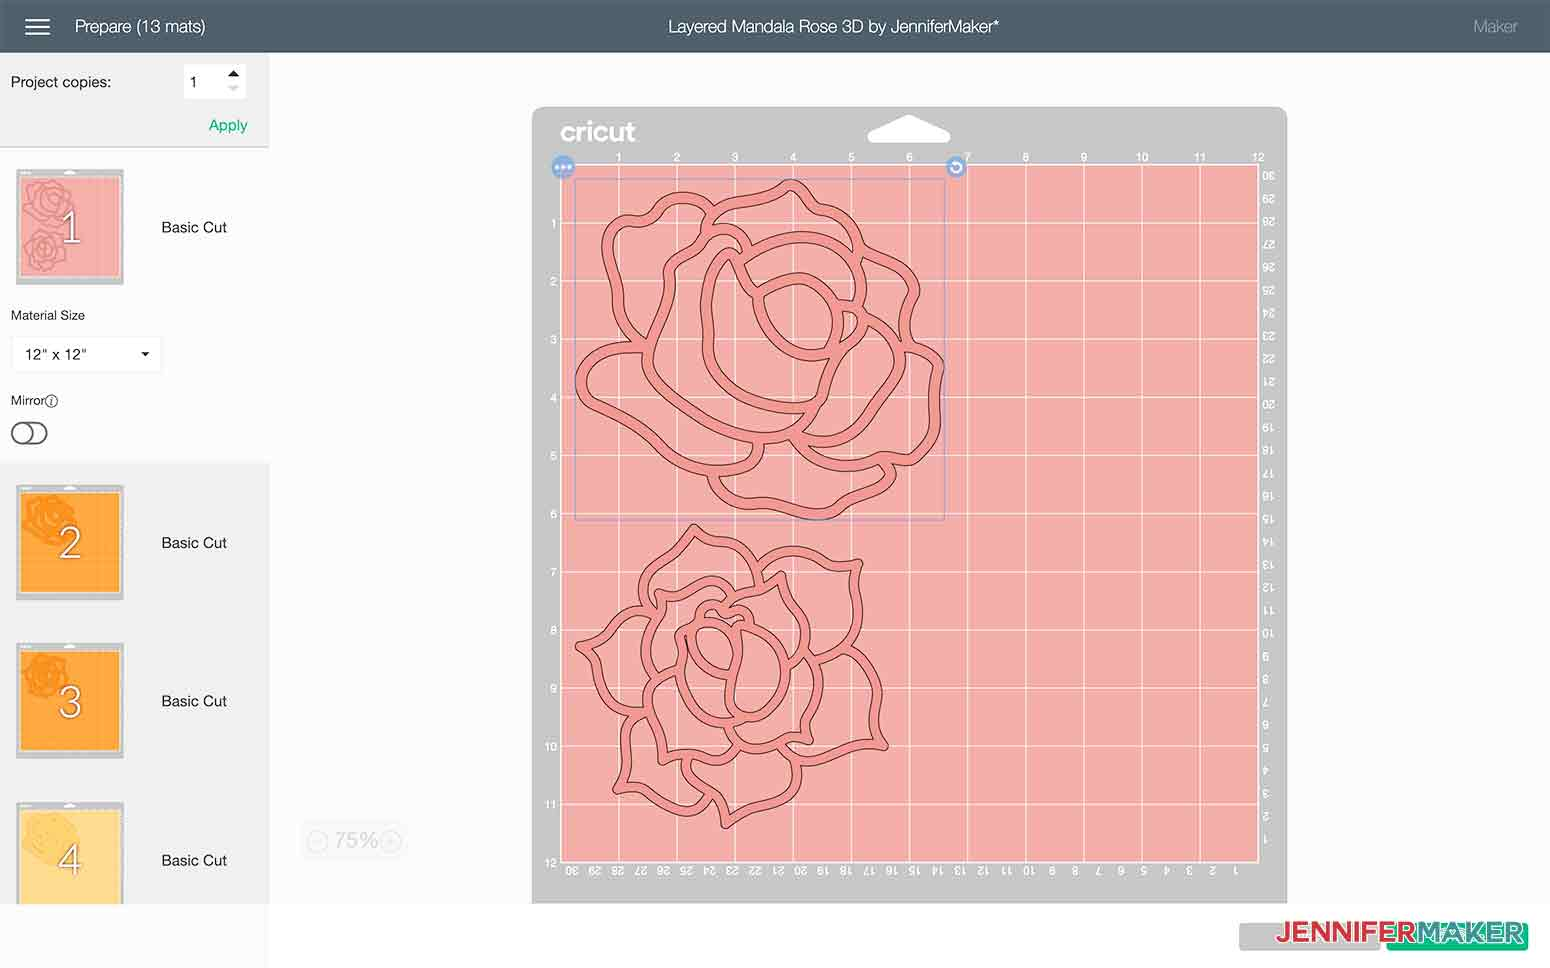 The cutting mats are set to cut in order of the layers in my Layered Mandala Rose 3D design